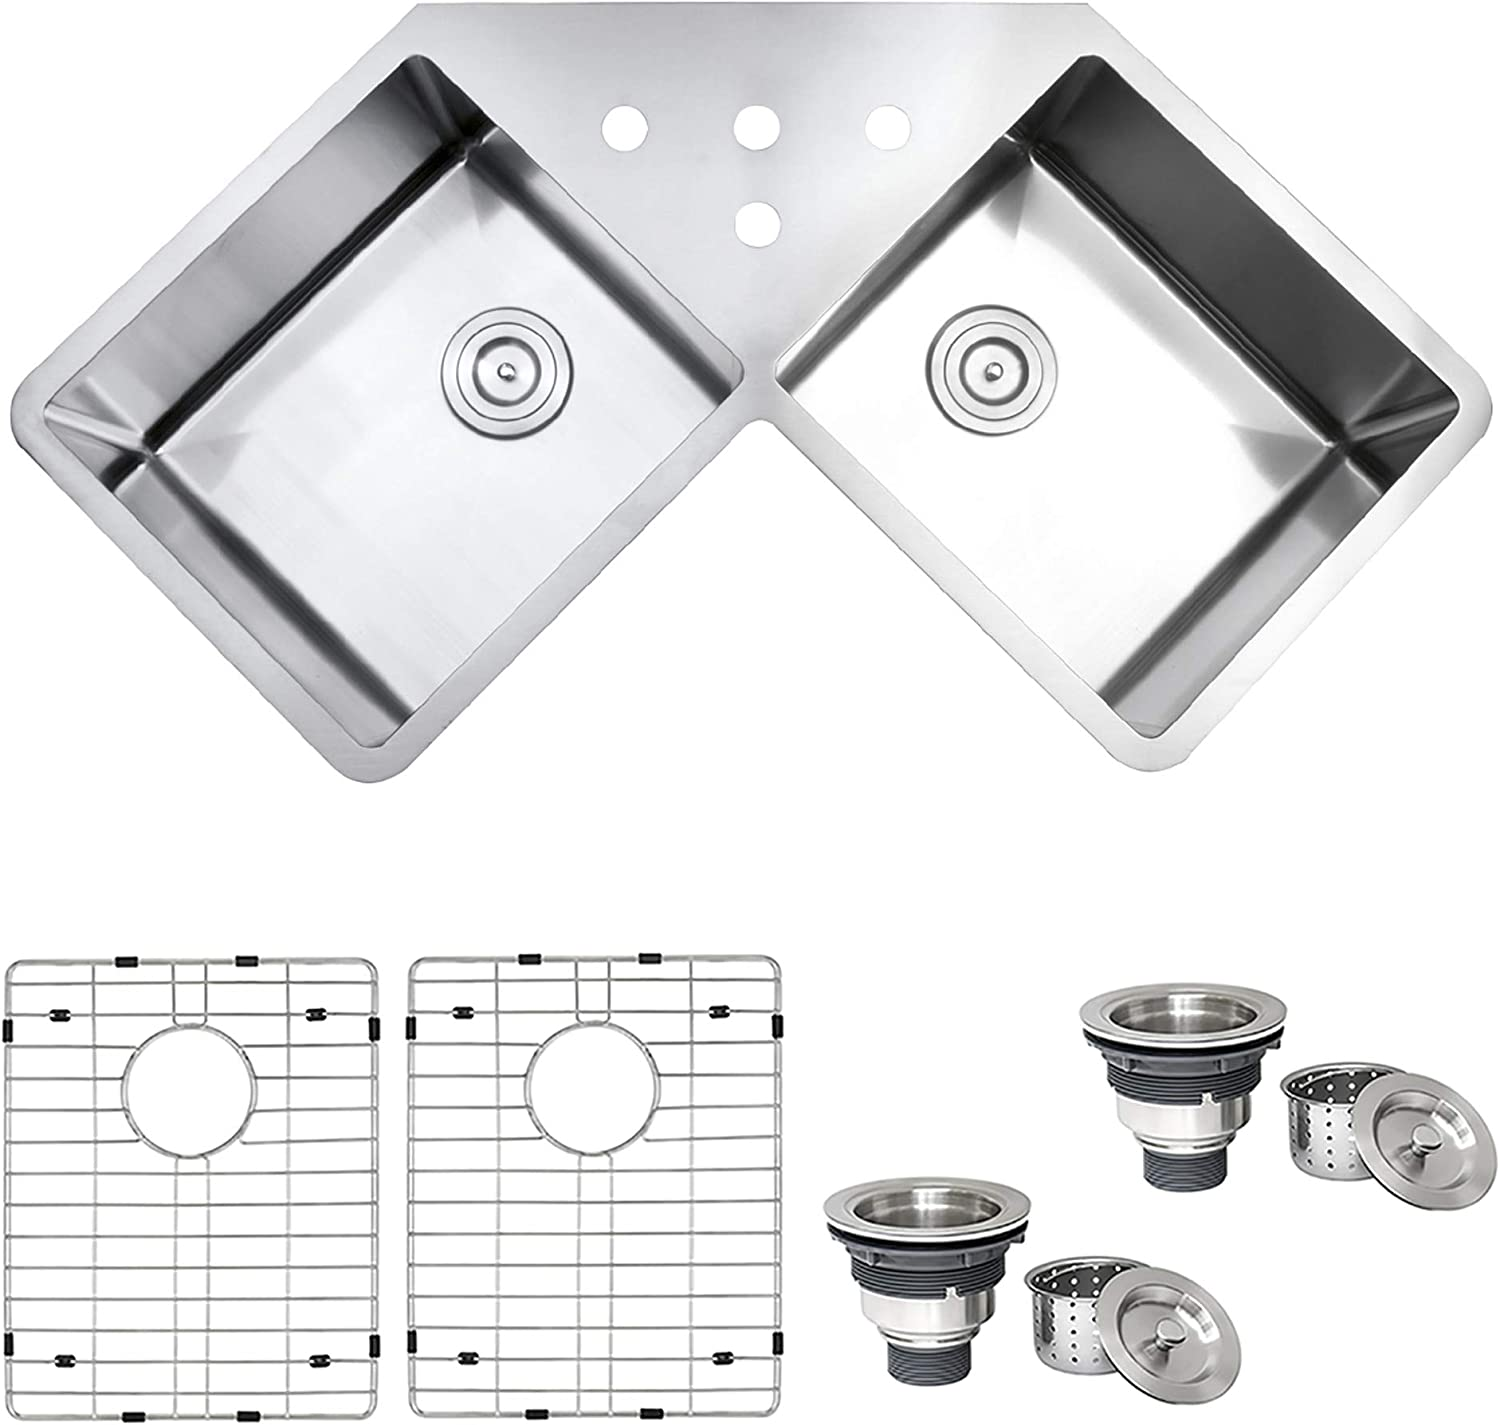 Ruvati Rvh8400 Undermount Corner Kitchen Sink 16 Gauge 44 Double Bowl Stainless Steel Amazon Com